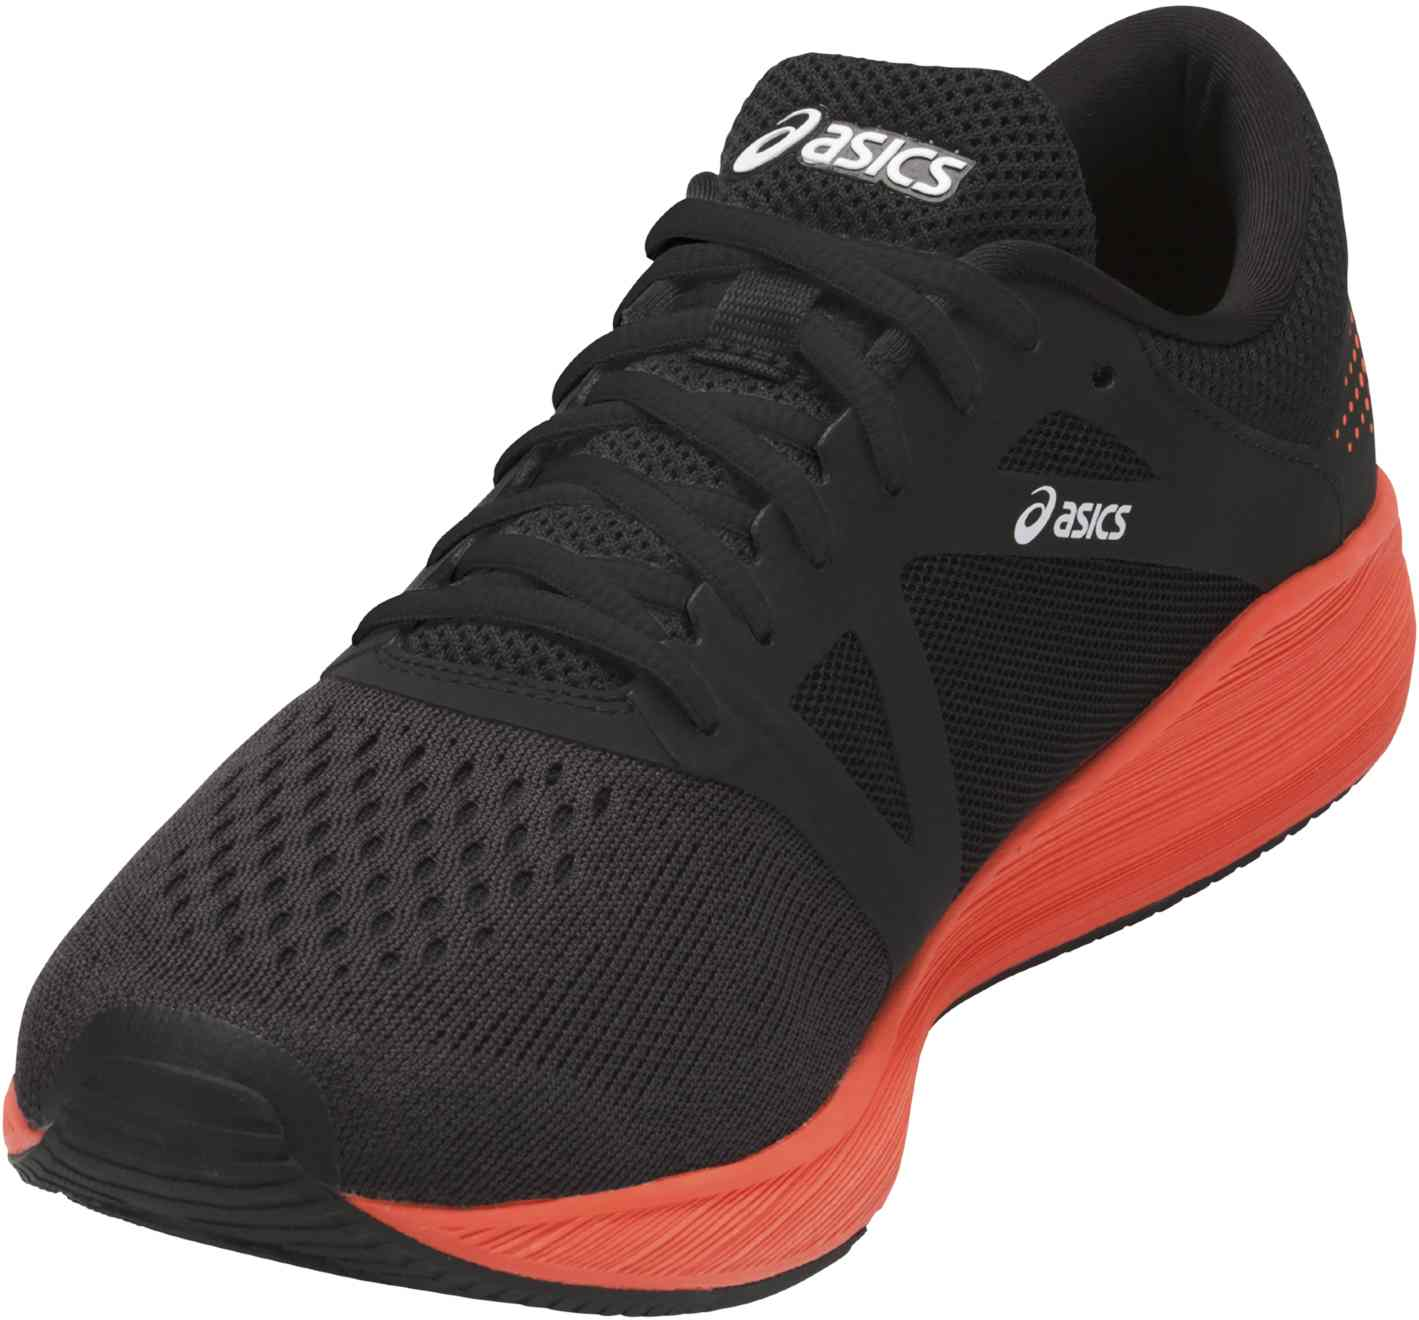 Asics Shoes In Black